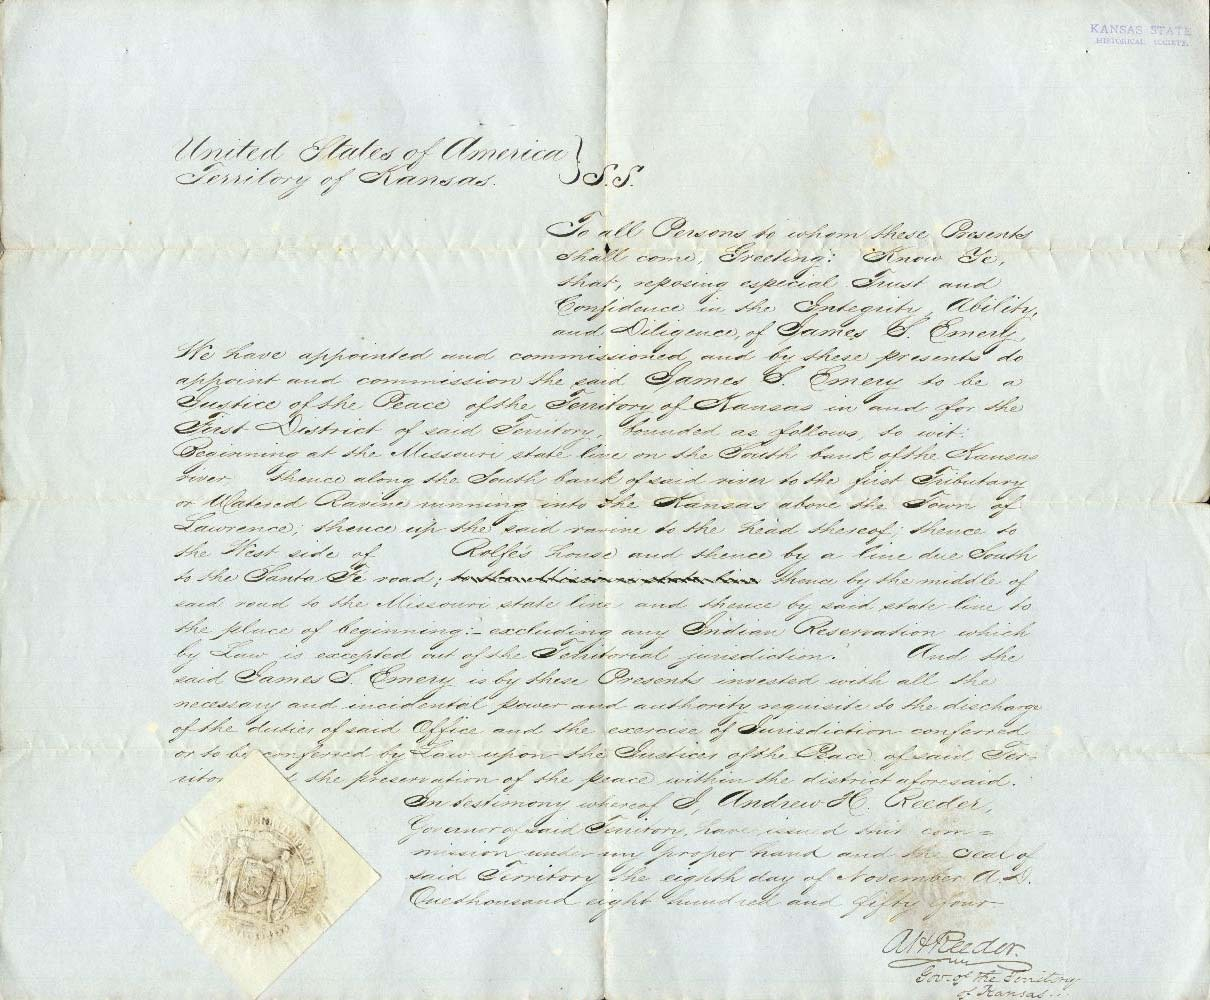 Certificate appointing James S. Emery as a Justice of the Peace for the First District, Kansas Territory